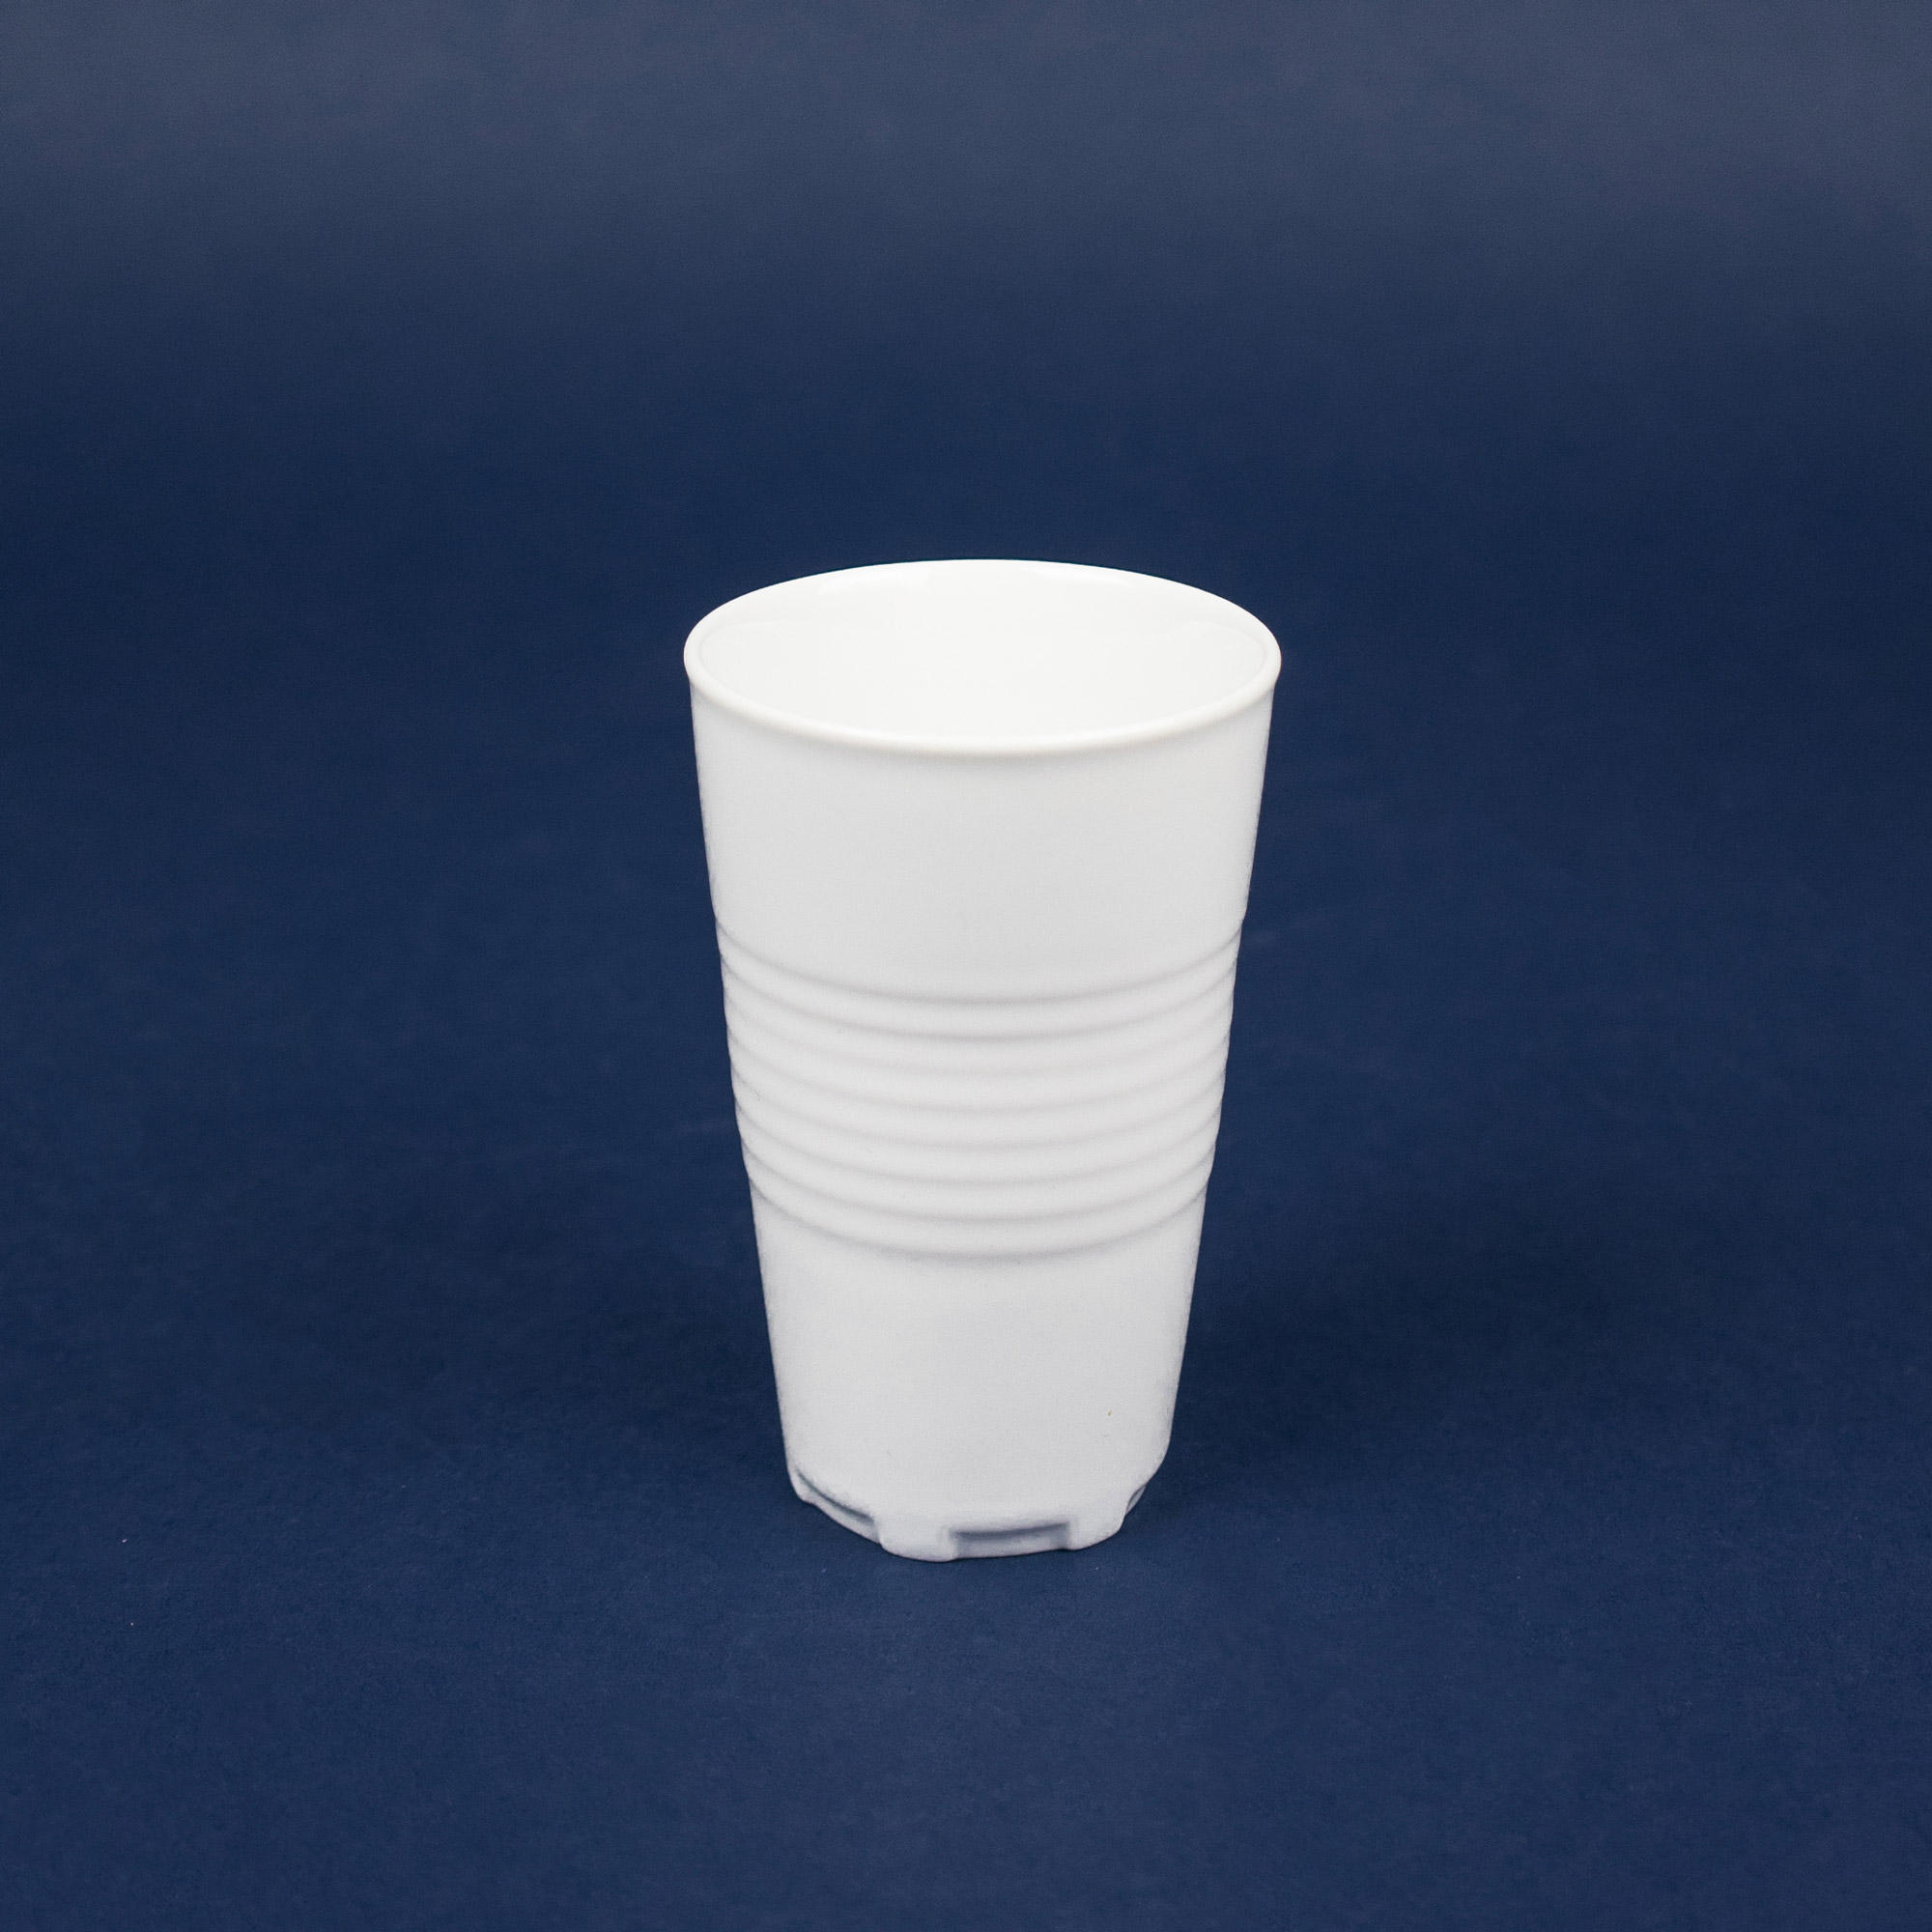 Back side of unique cup